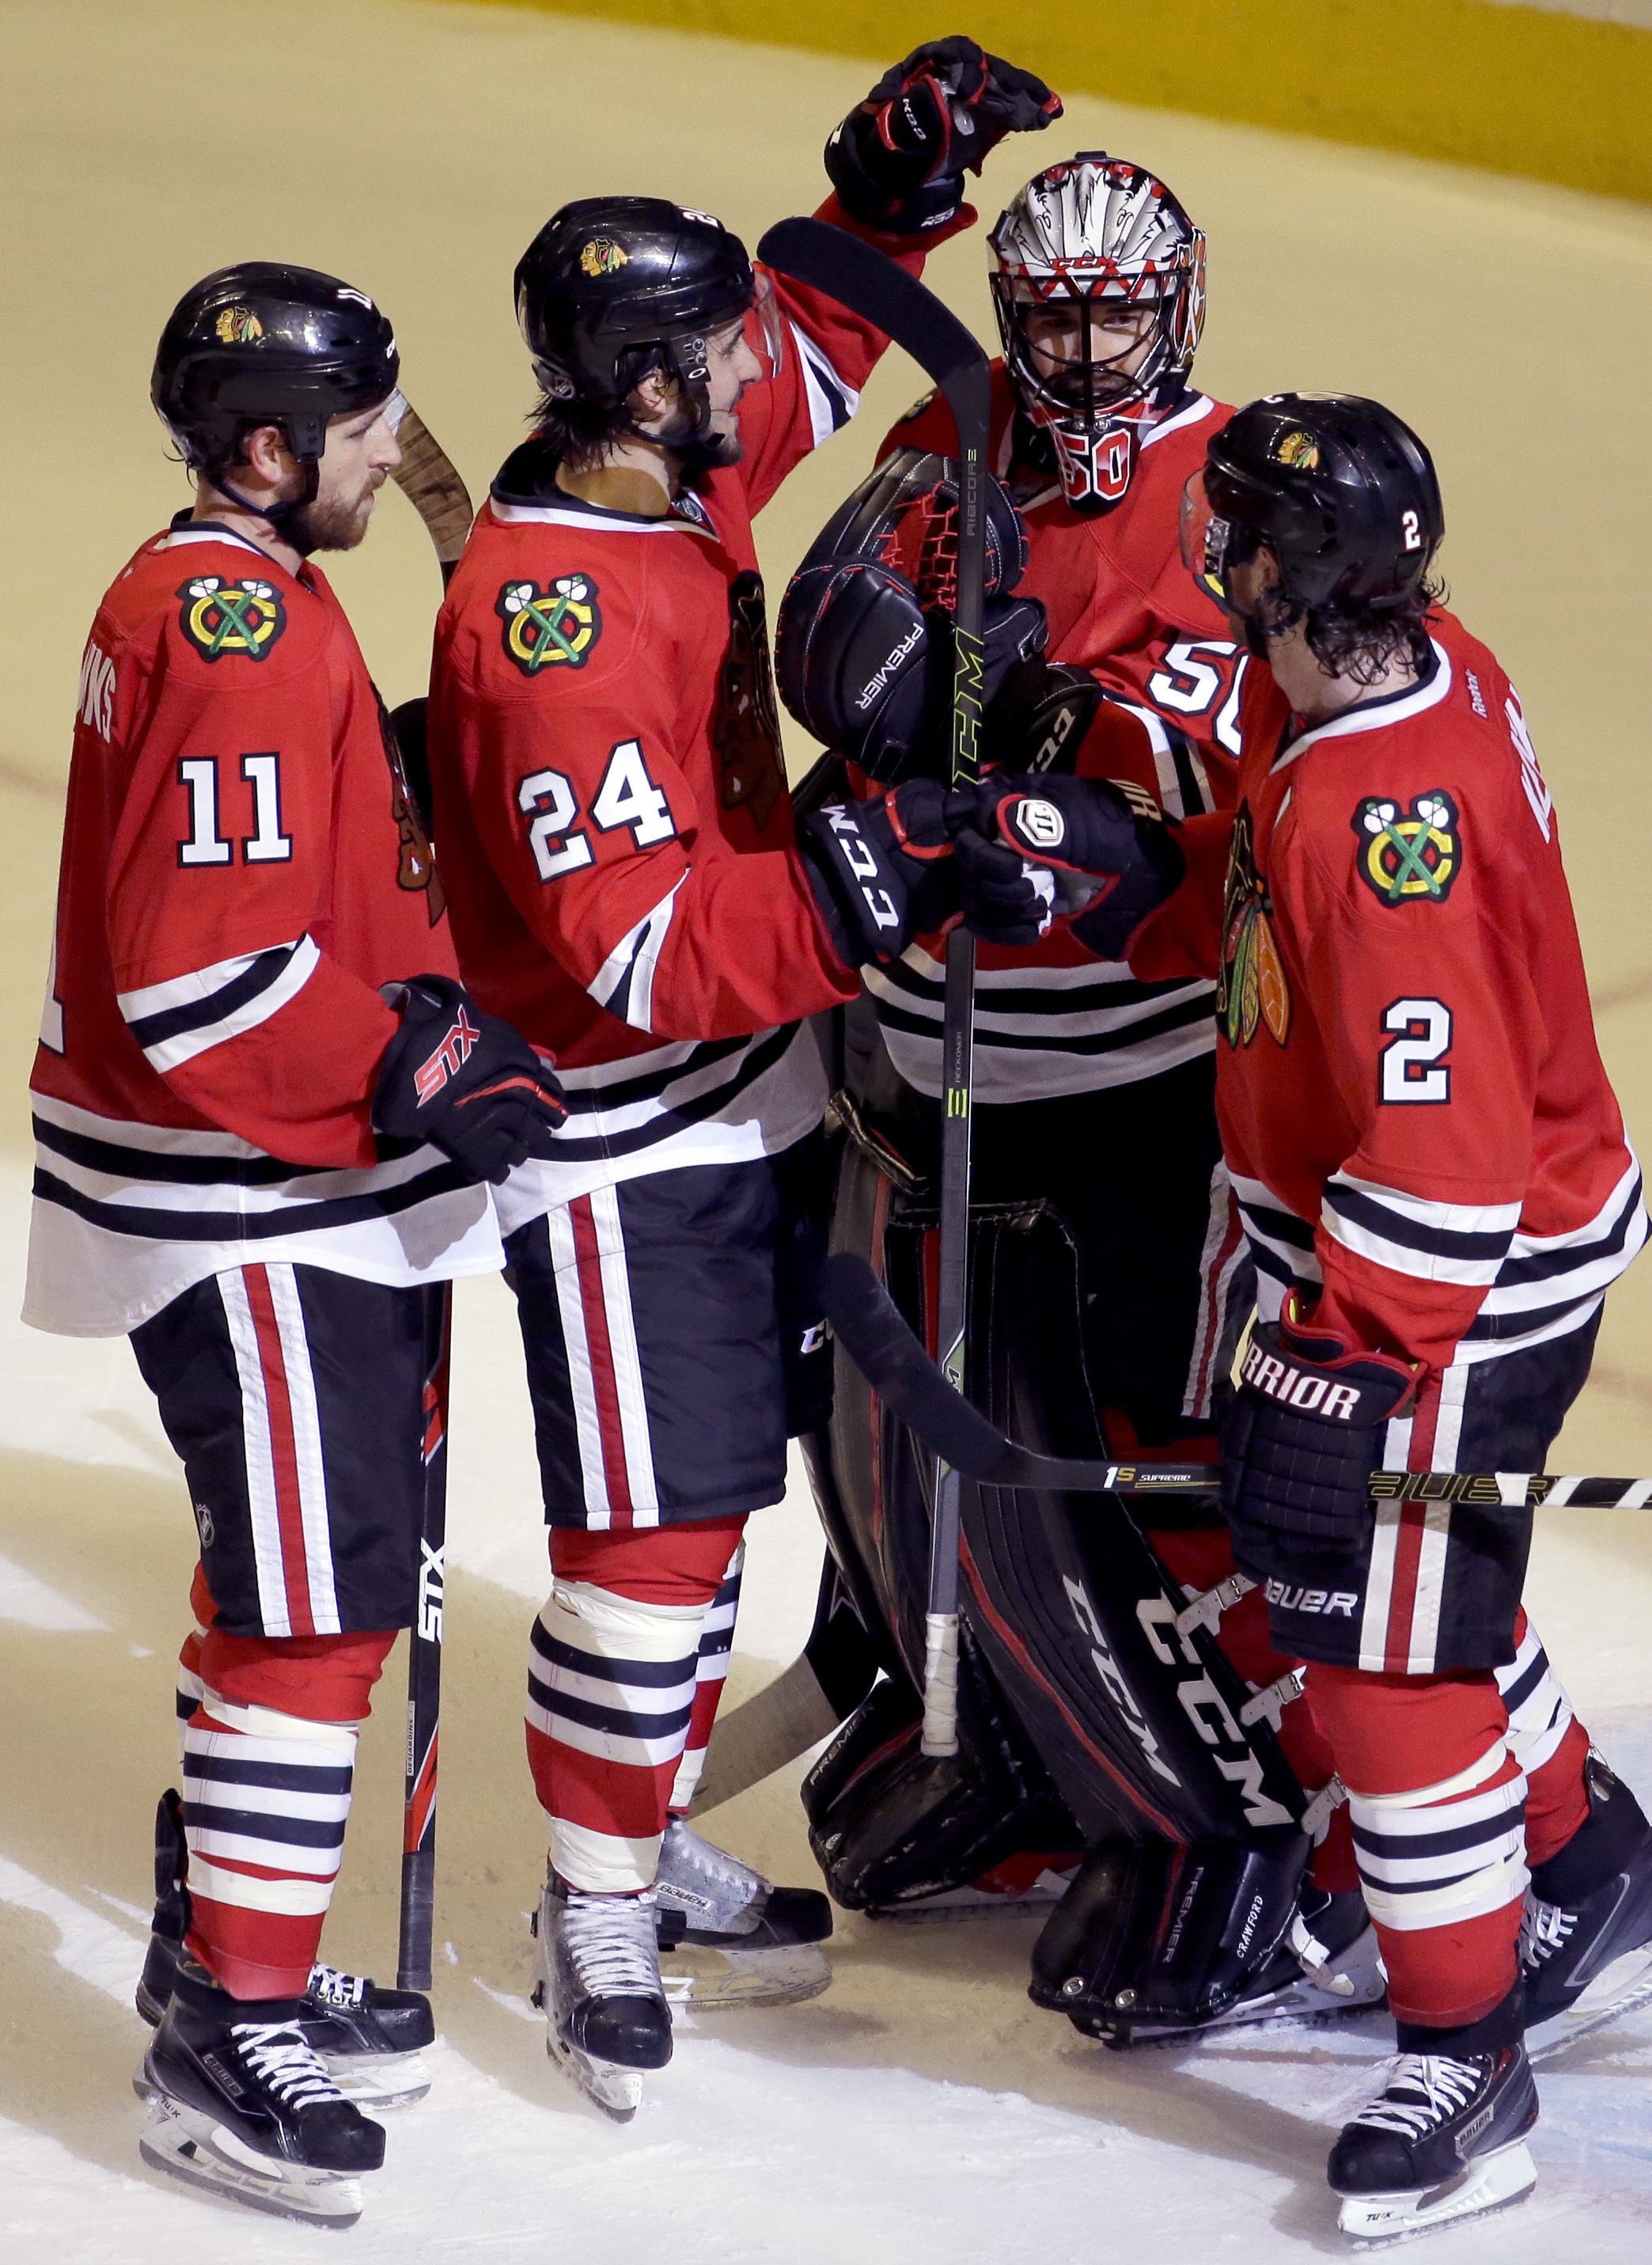 Chicago Blackhawks goalie Corey Crawford, second from right, celebrates with center Phillip Danault (24), defenseman Duncan Keith (2) and left wing Andrew Desjardins (11) after they defeated the Buffalo Sabres 3-1 in an NHL hockey game Friday, Jan. 8, 201